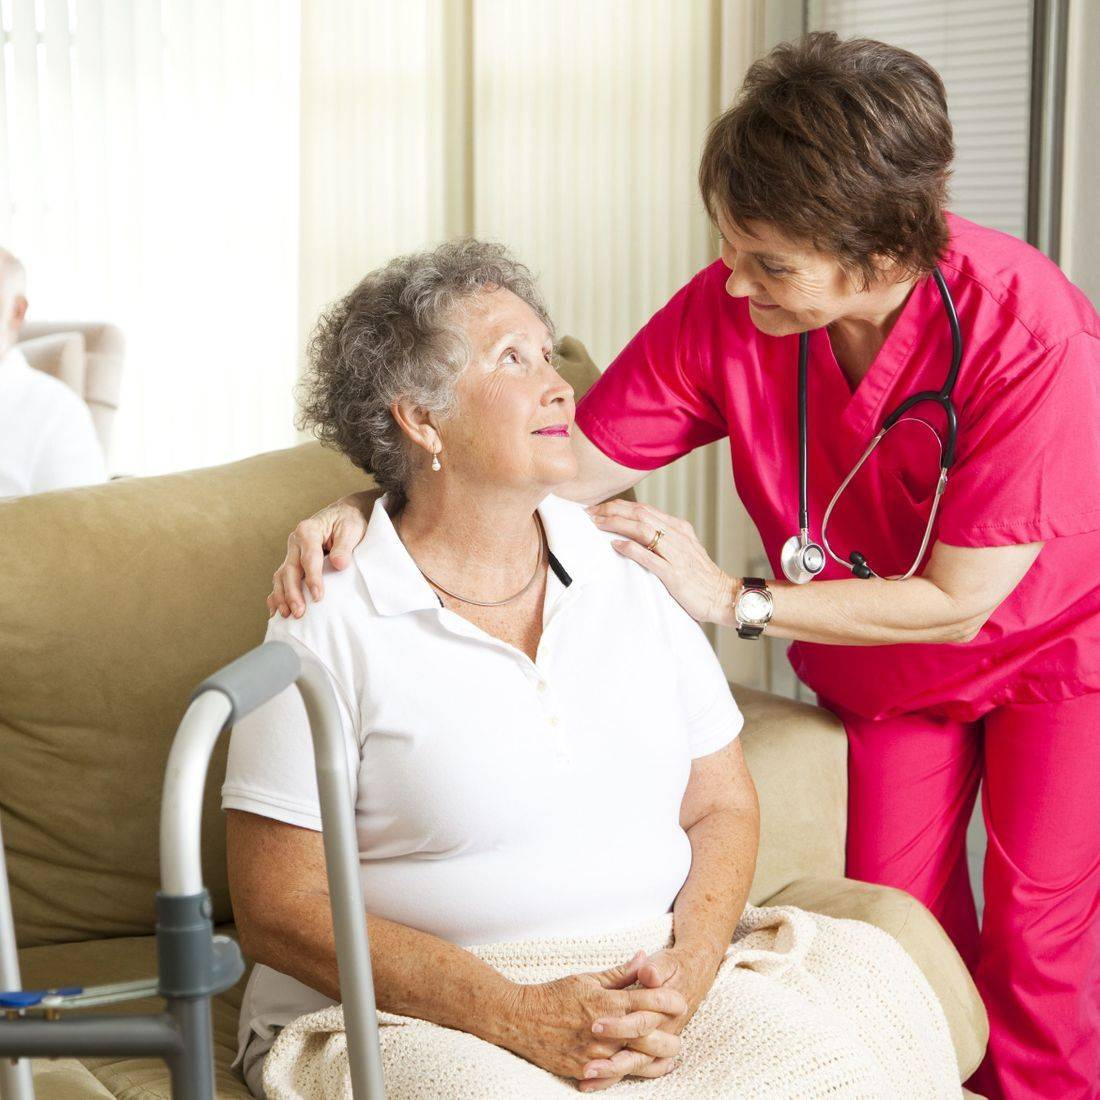 Our Nurses have over 15+ Years of Experienced